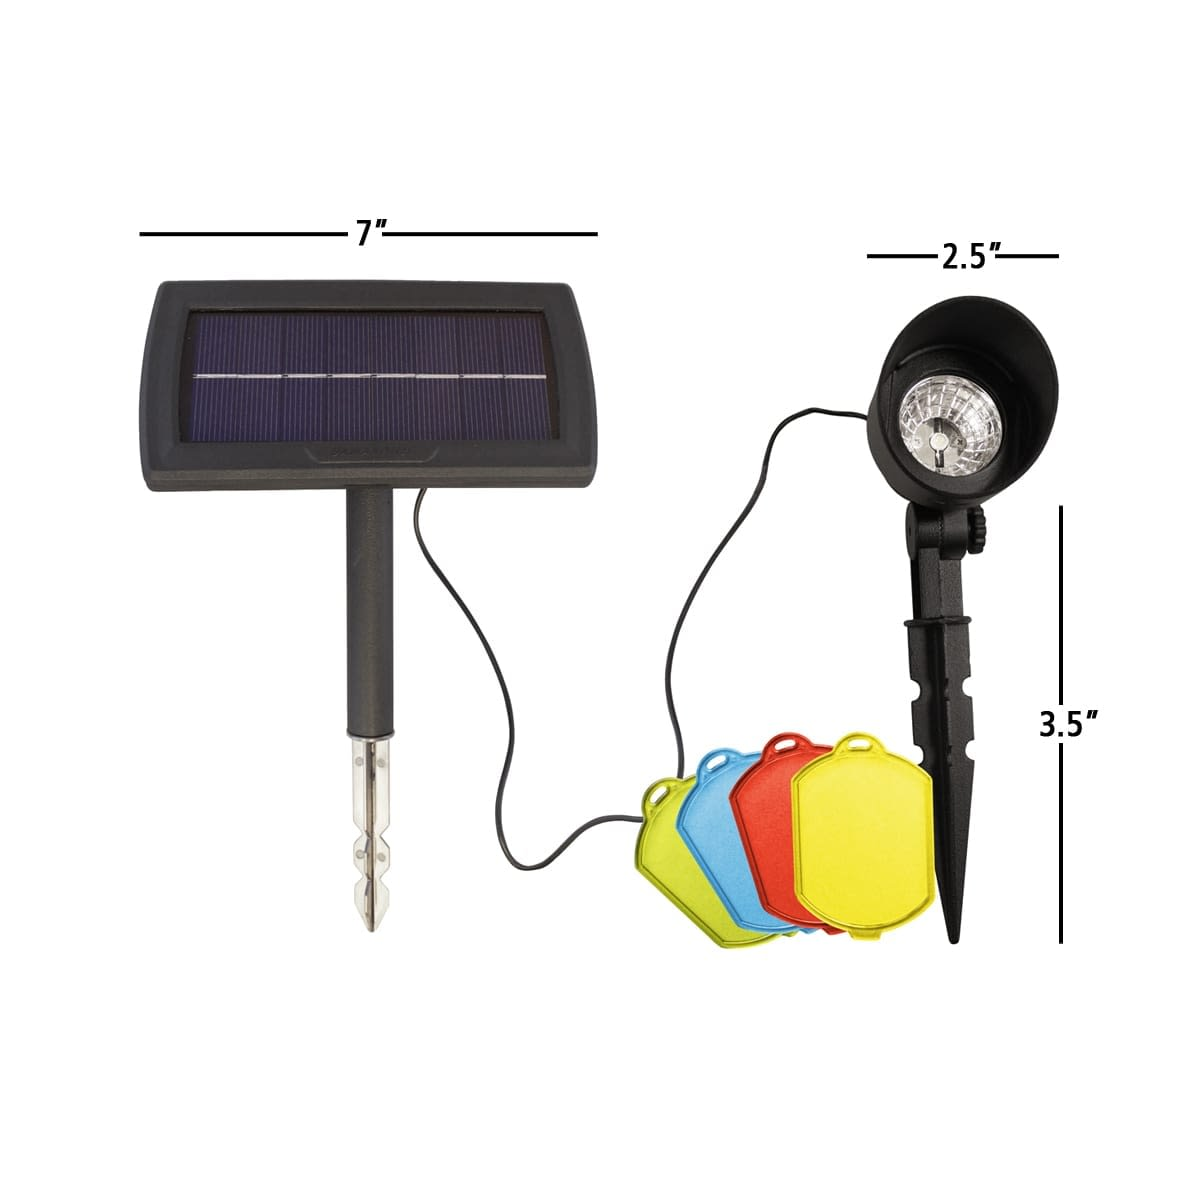 Solar Accent Spotlight with Color Changing Lenses By Gama Sonic GS-150